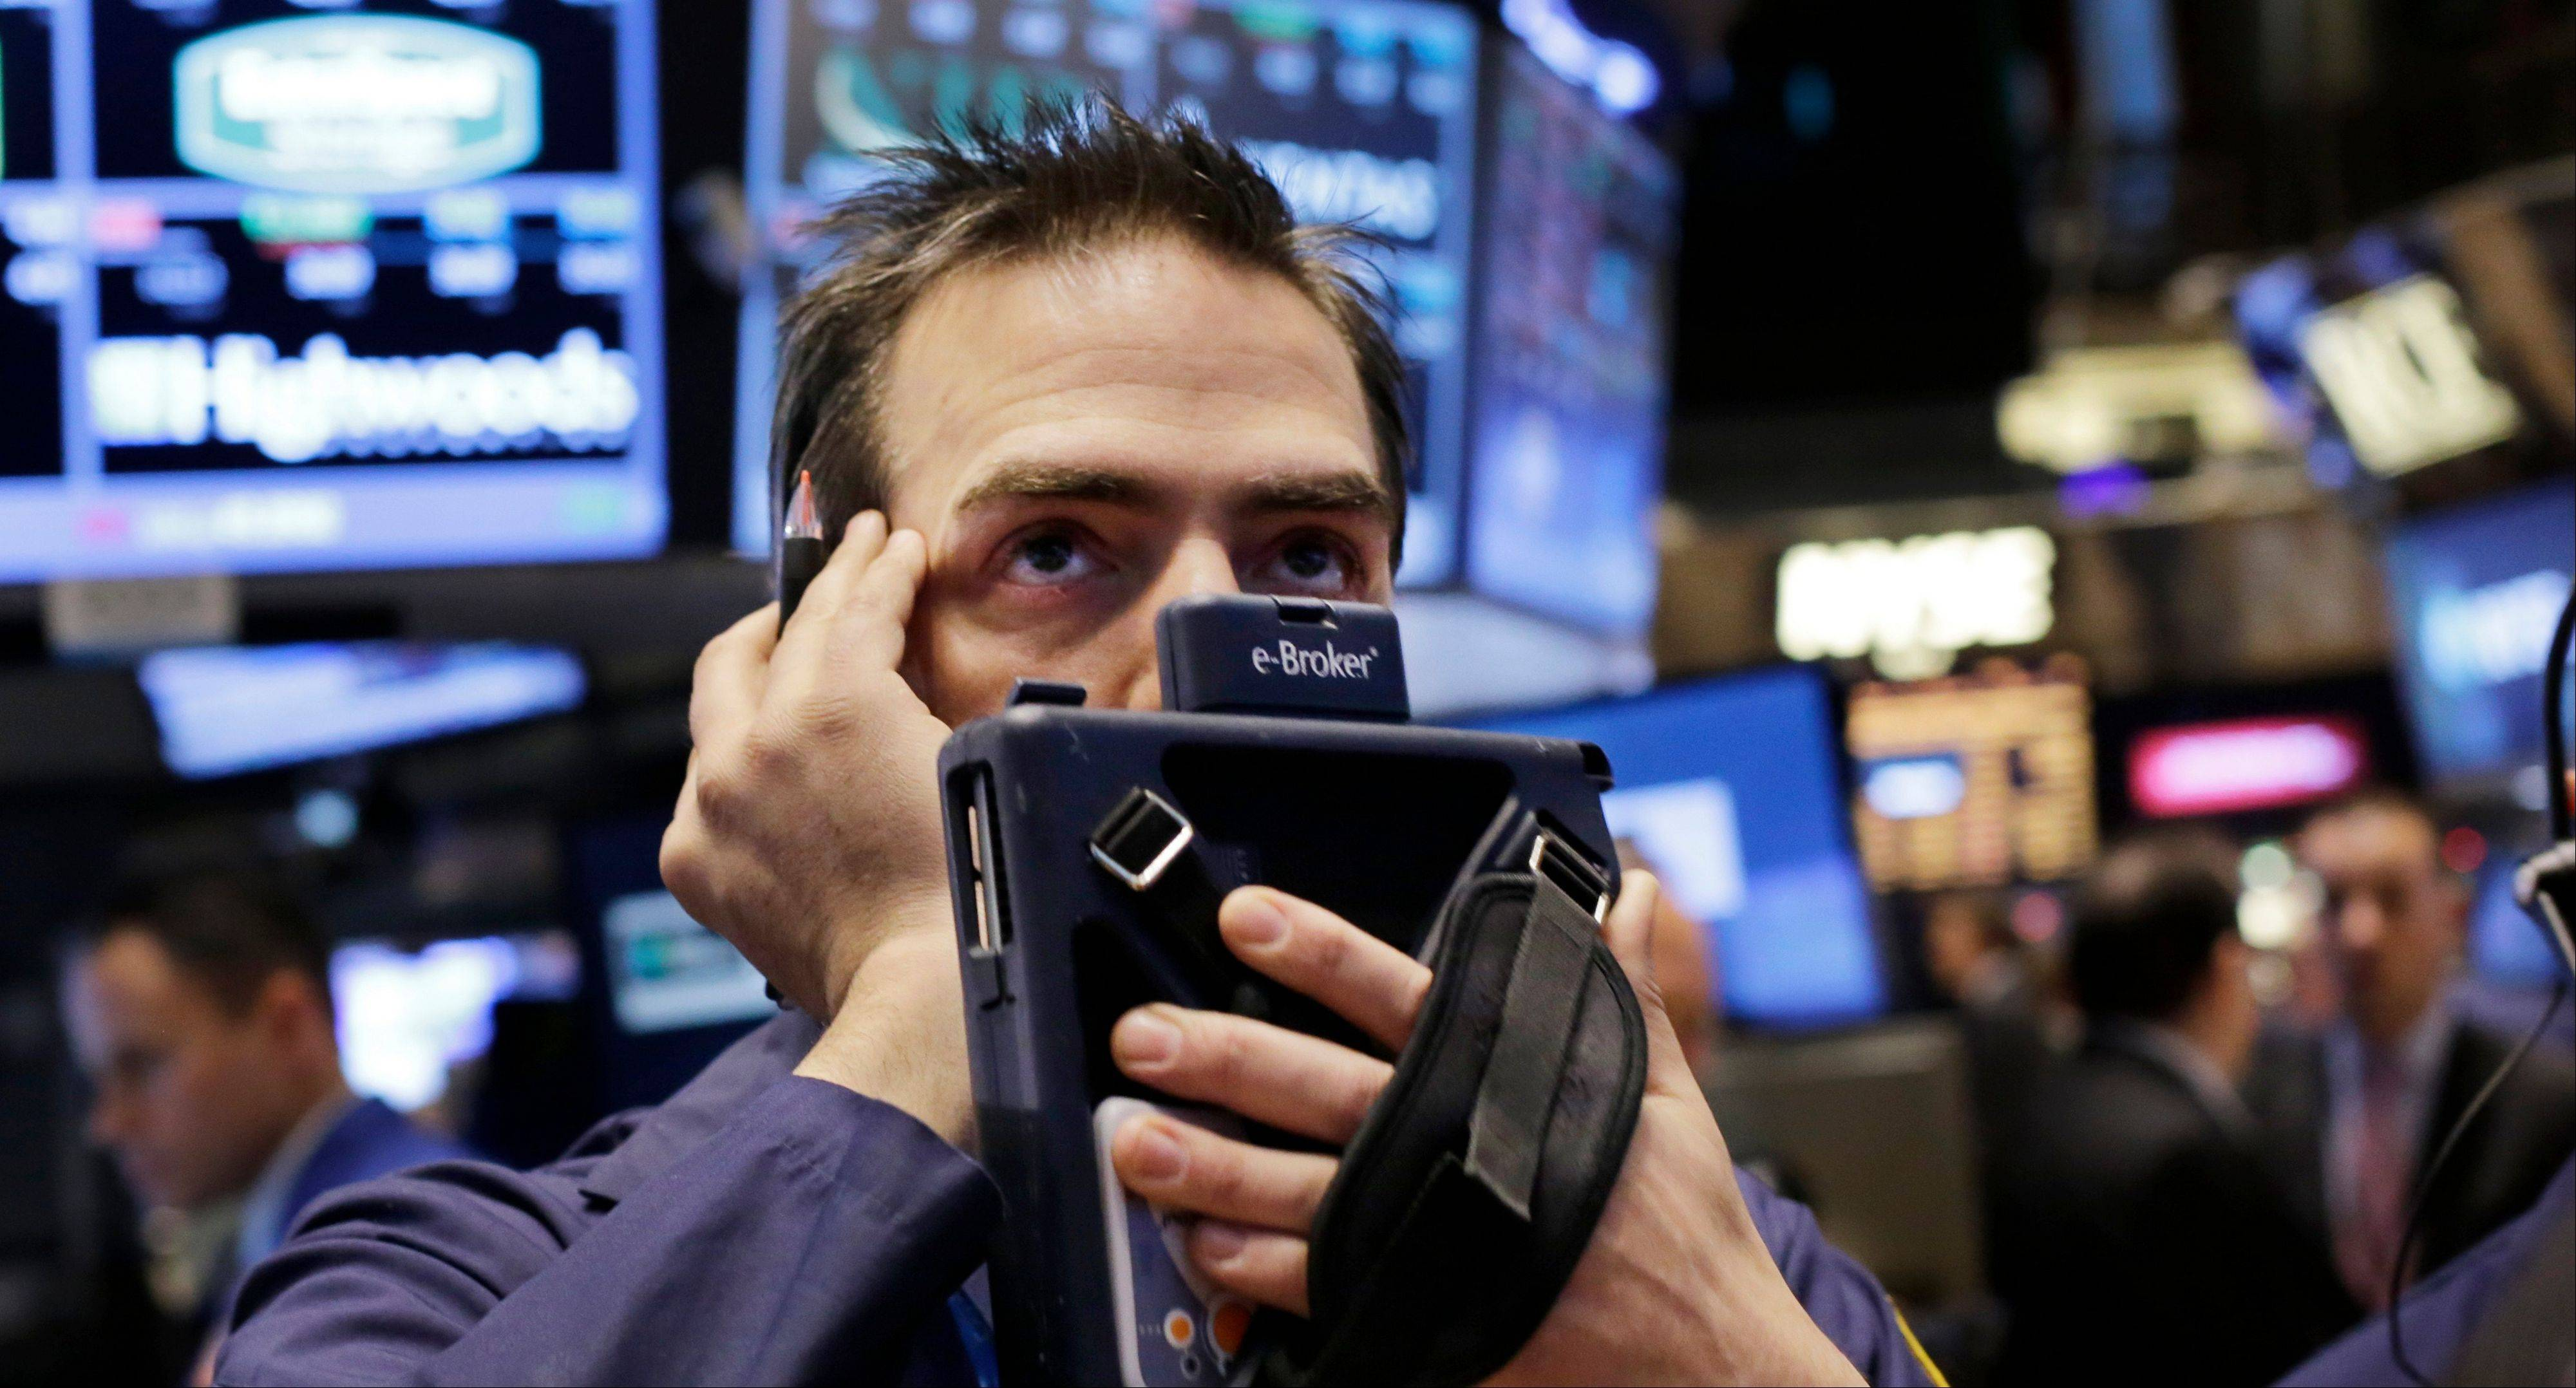 Stocks declined Thursday, with the Standard & Poor's 500 Index starting the year lower for the first time since 2008, after benchmark indexes posted the biggest annual rallies in more than 15 years.